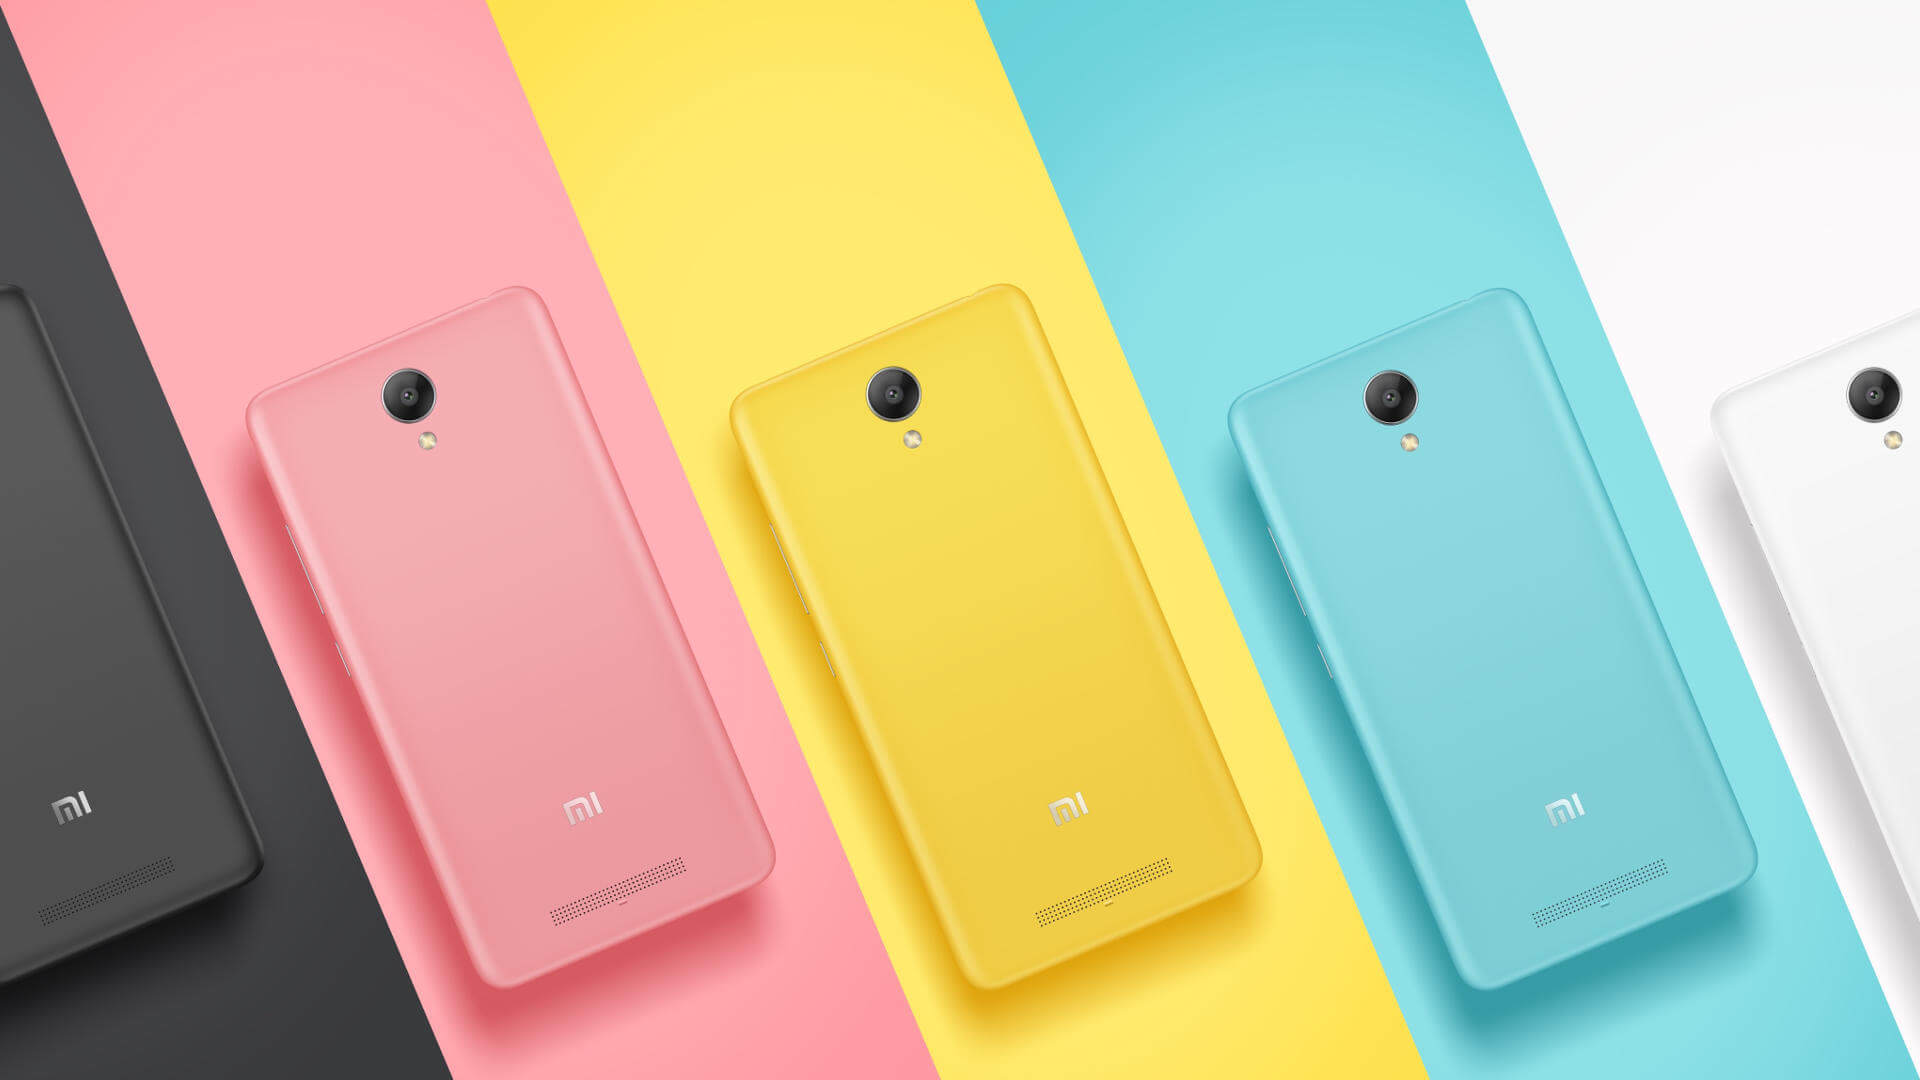 xiaomi-redmi-5-redmi-5-plus-design